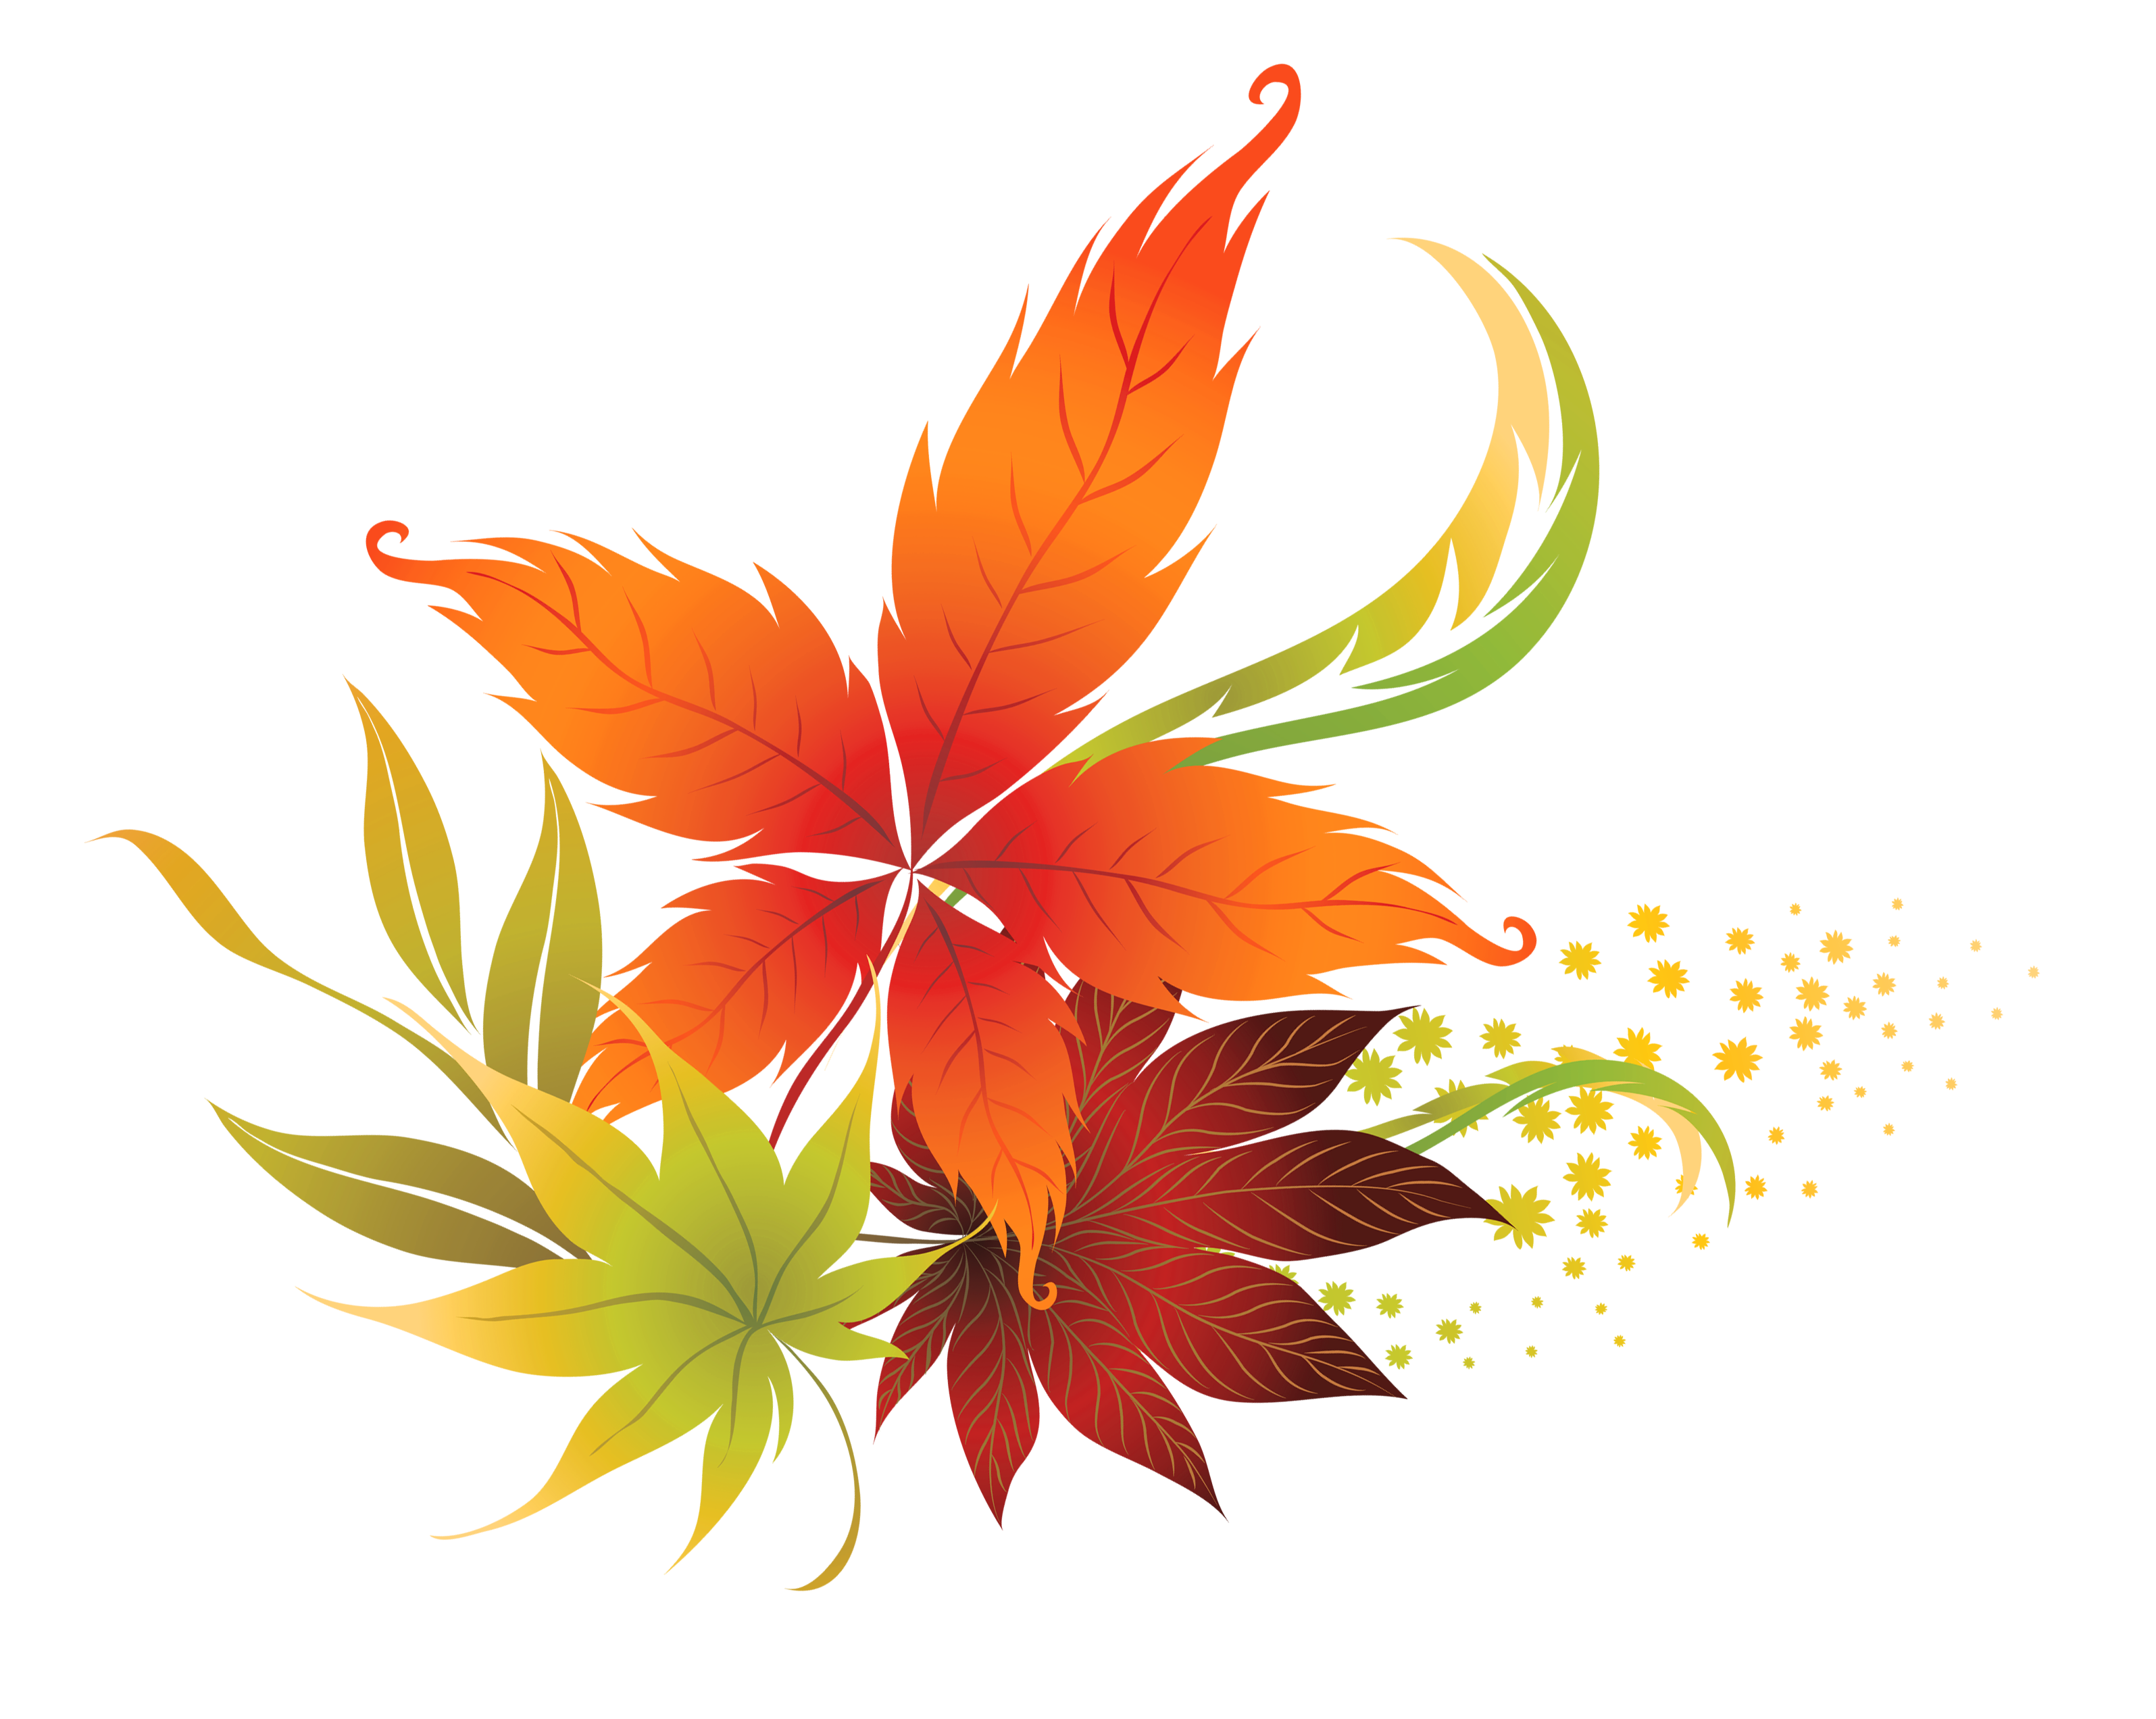 Fall leaves fall leaf clipart no background free clipart.